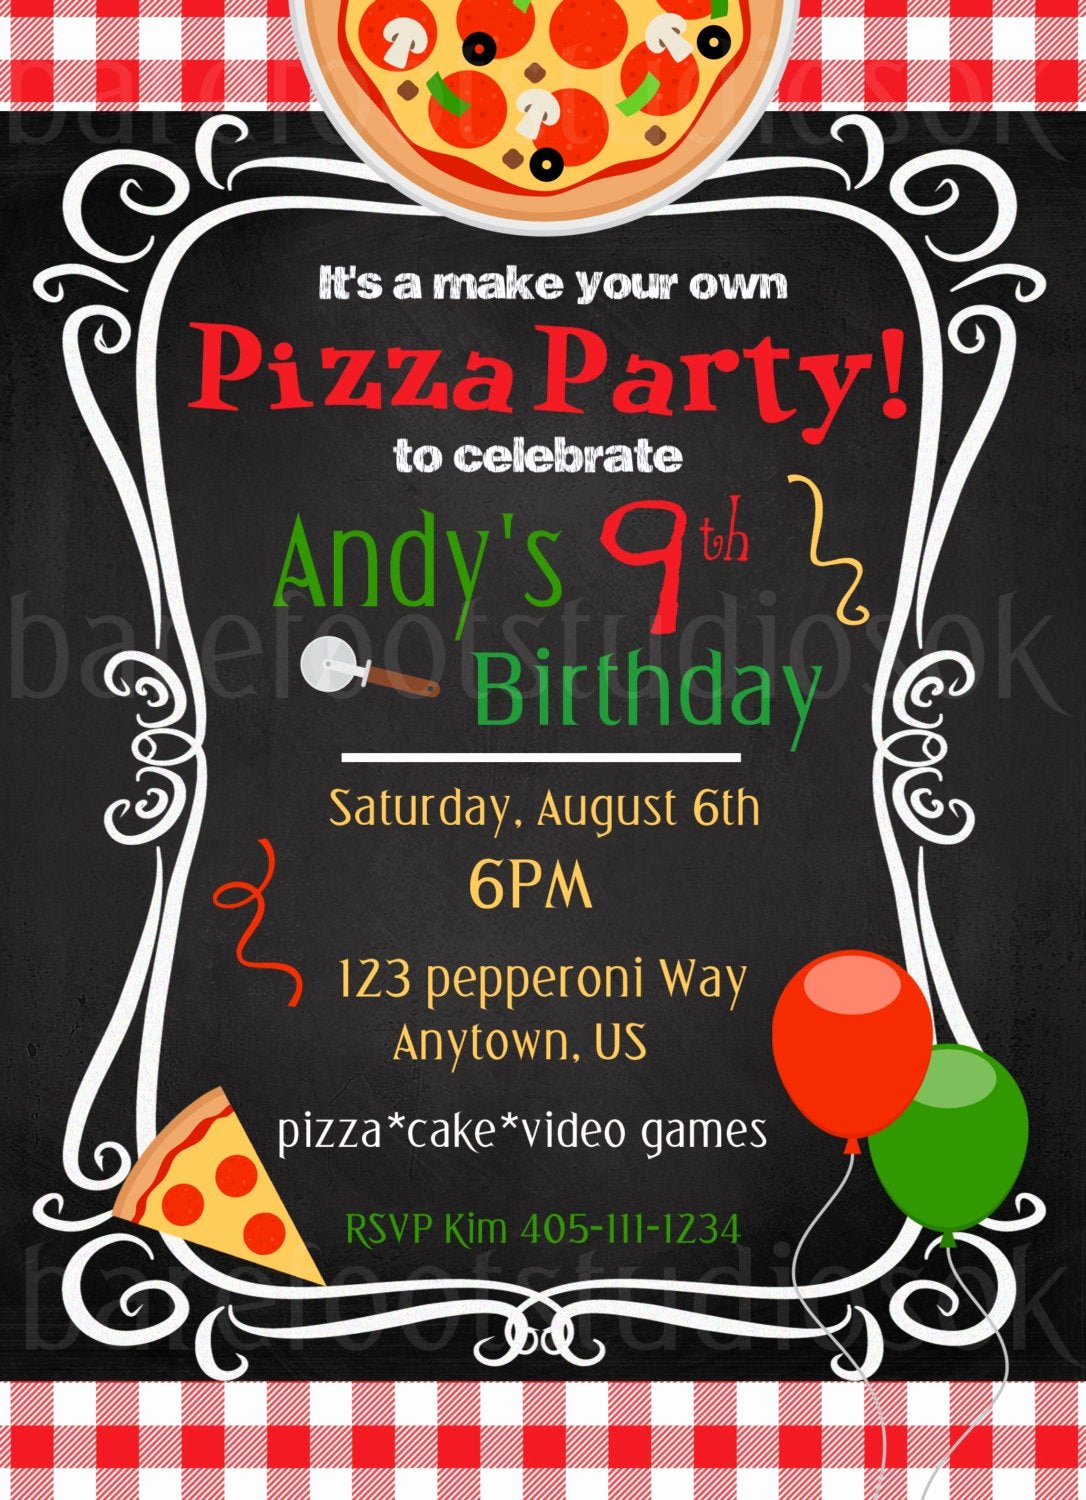 Pizza Party Invites Free Printable Lovely Pizza Party Invitation Pizza Party Printable Birthday